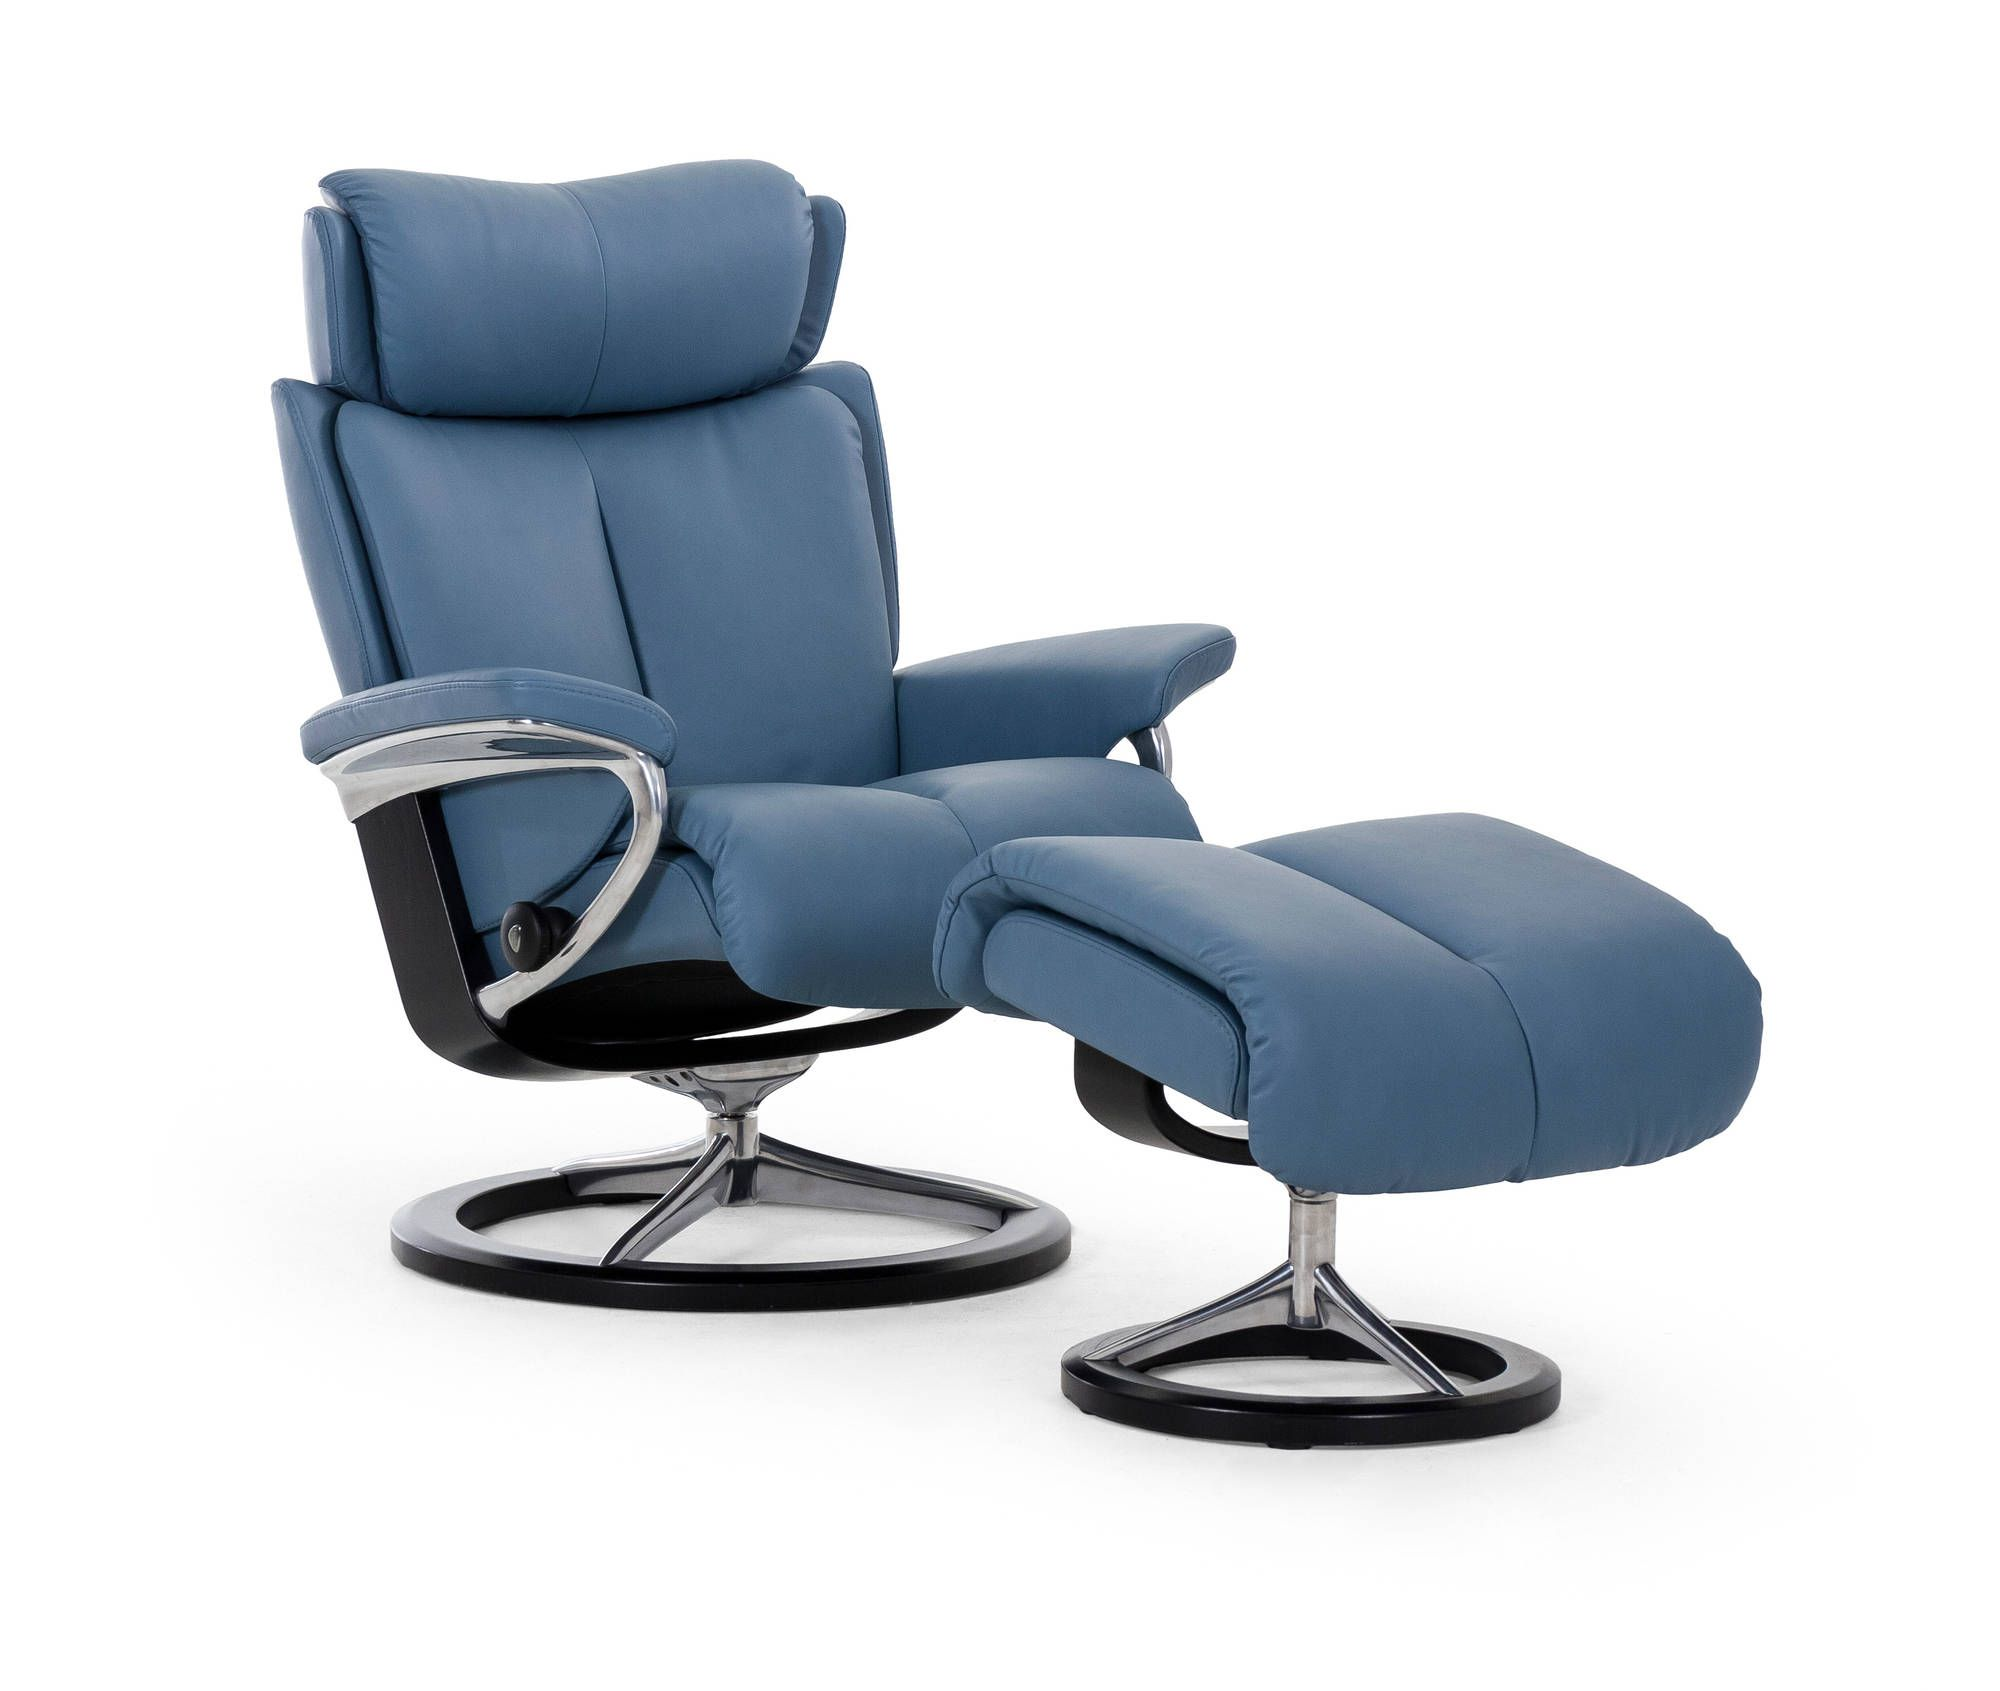 Stressless Magic Recliner in Paloma Leather (color Sparrow Blue) with Signature Base (  sc 1 st  Pinterest & Stressless Magic Recliner in Paloma Leather (color: Sparrow Blue ... islam-shia.org